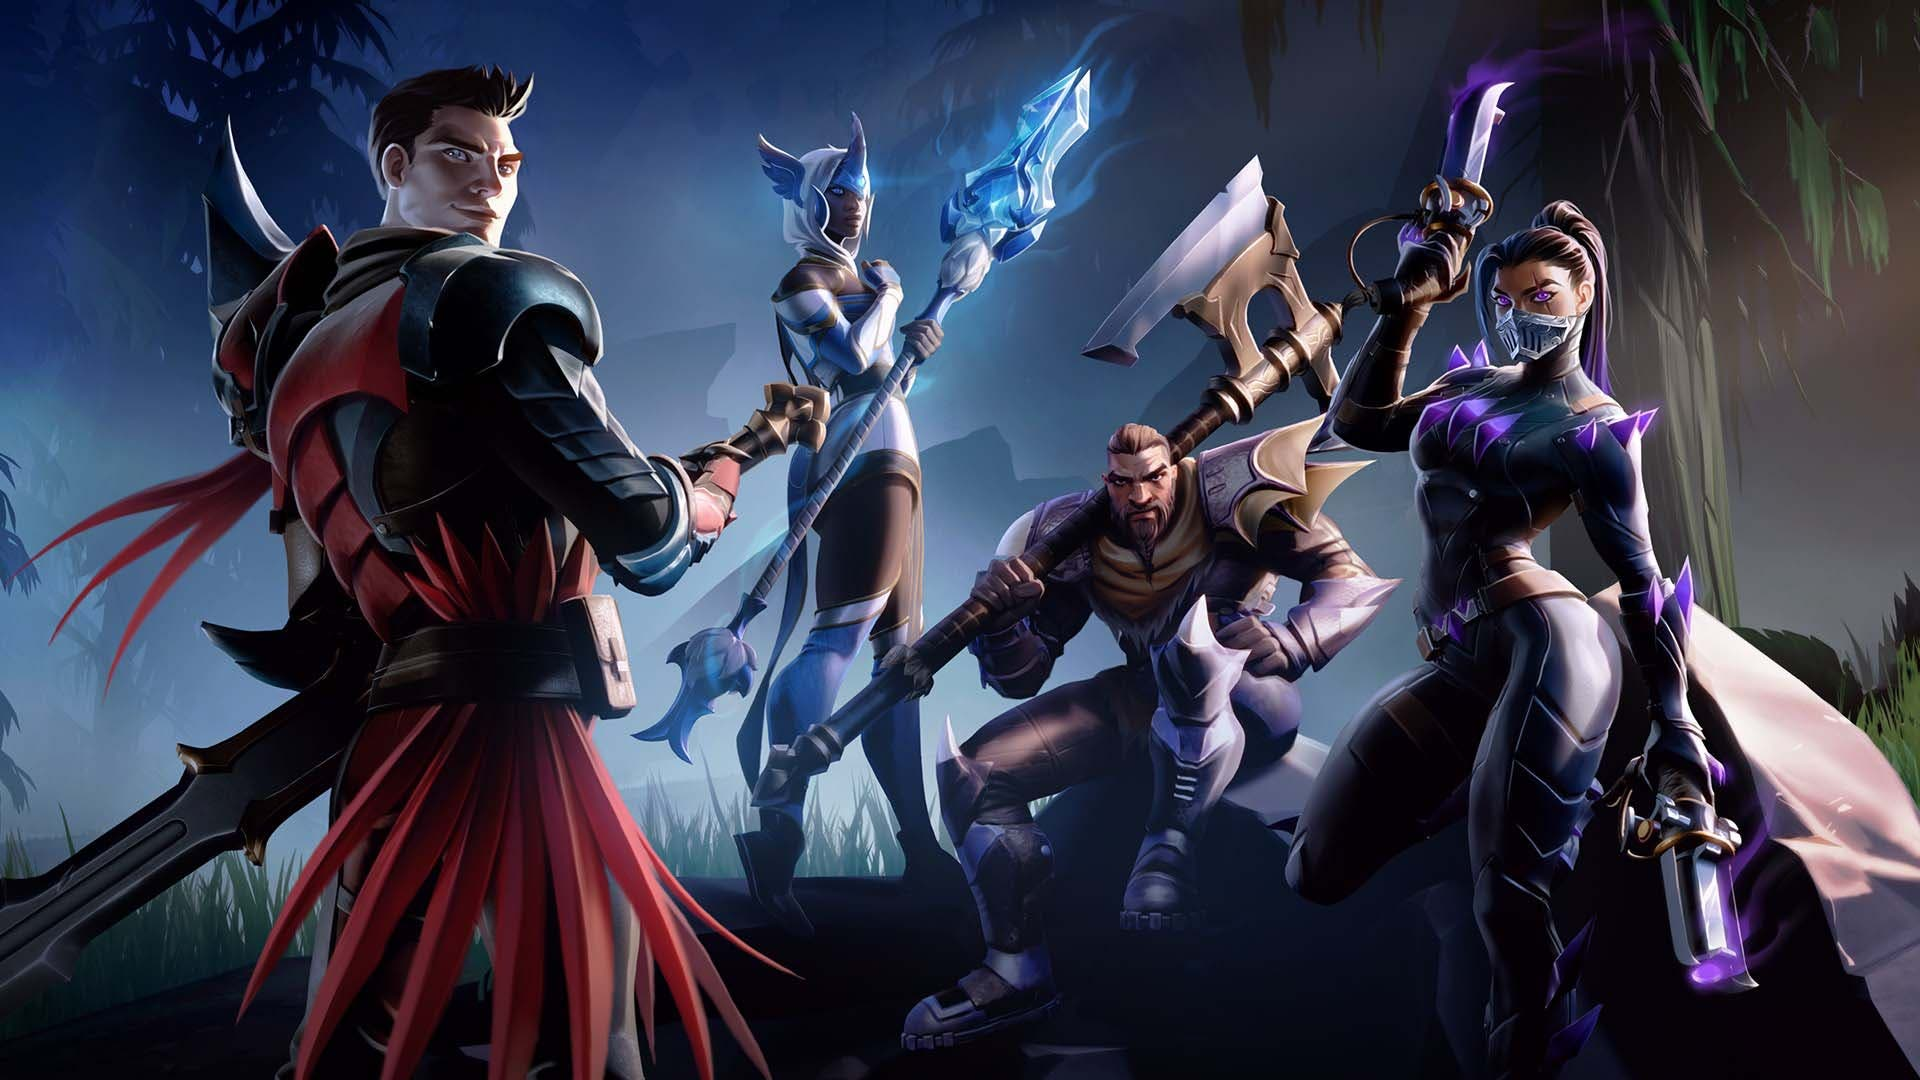 El cross-play de Dauntless entre Switch y Xbox One ya está disponible 6